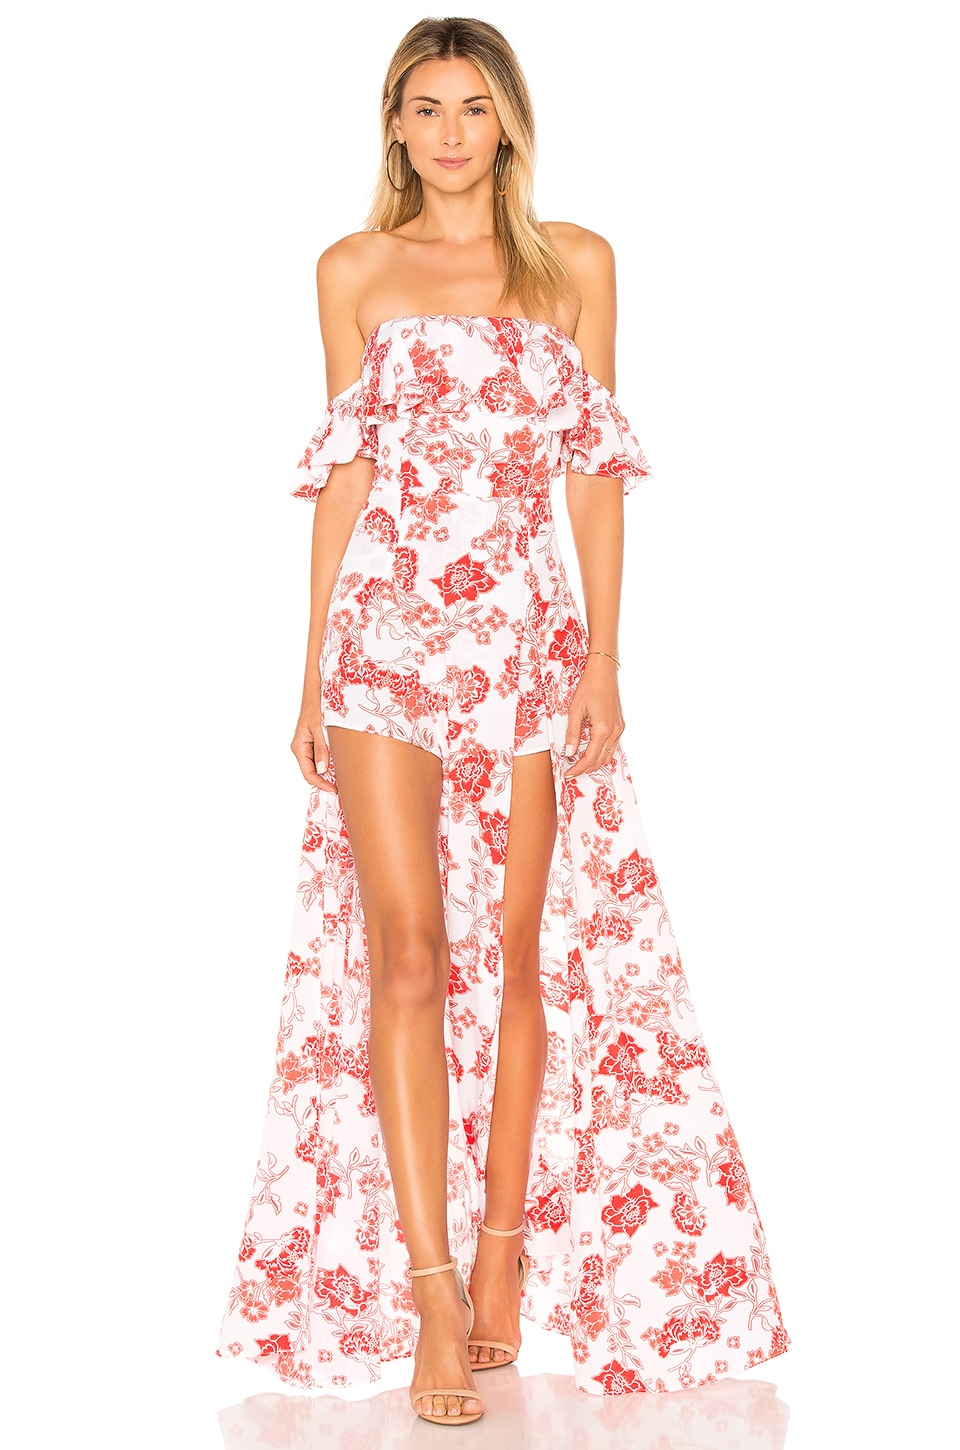 ale by alessandra x REVOLVE Betina Maxi Dress in Sweet Oleander